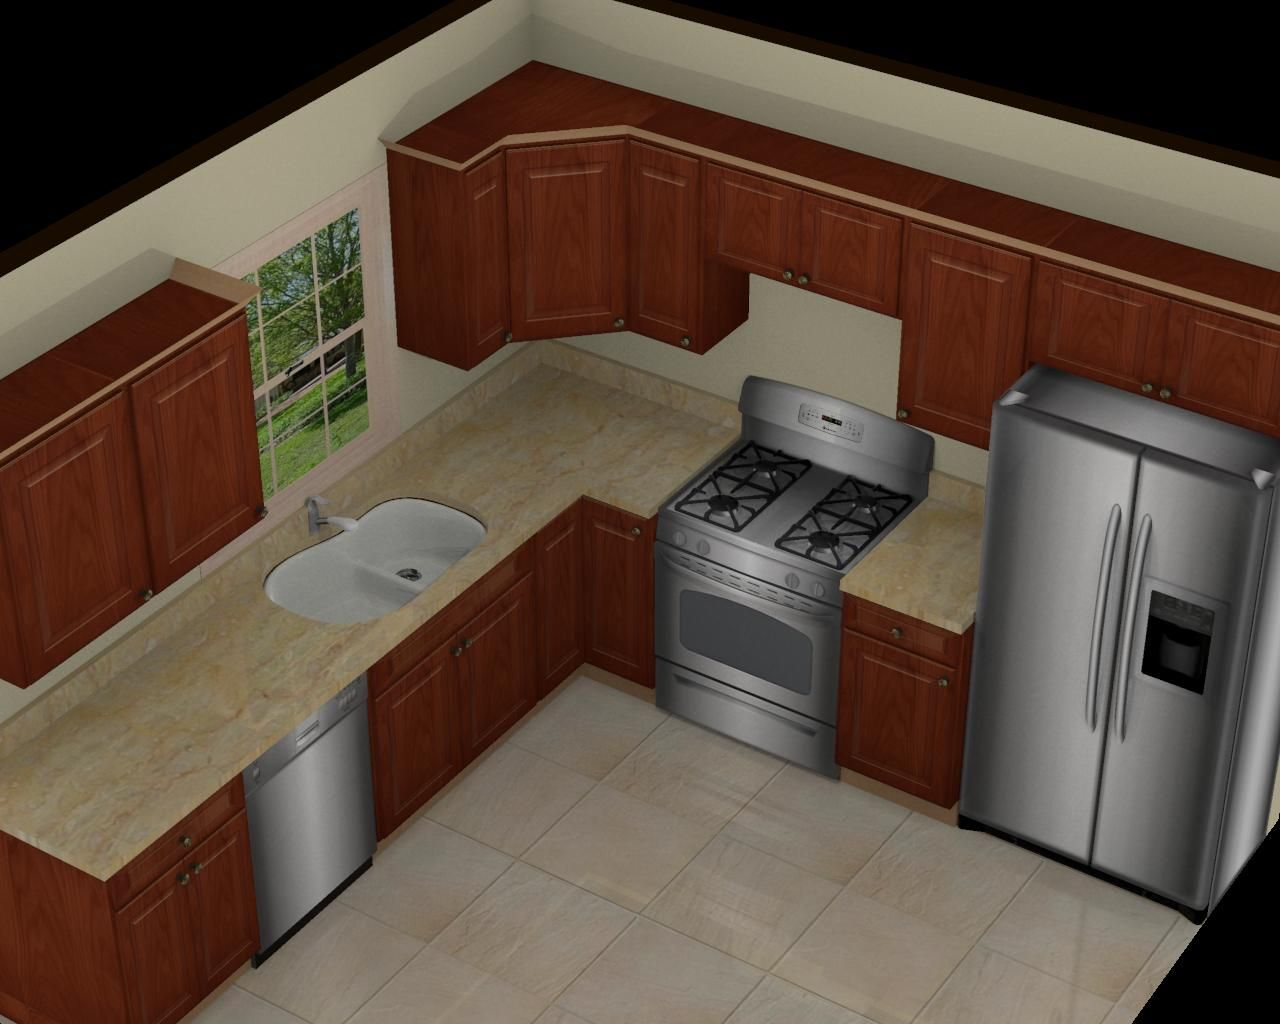 Kitchen great 10x10 3d kitchen design with brown cabinet for Great kitchen design ideas